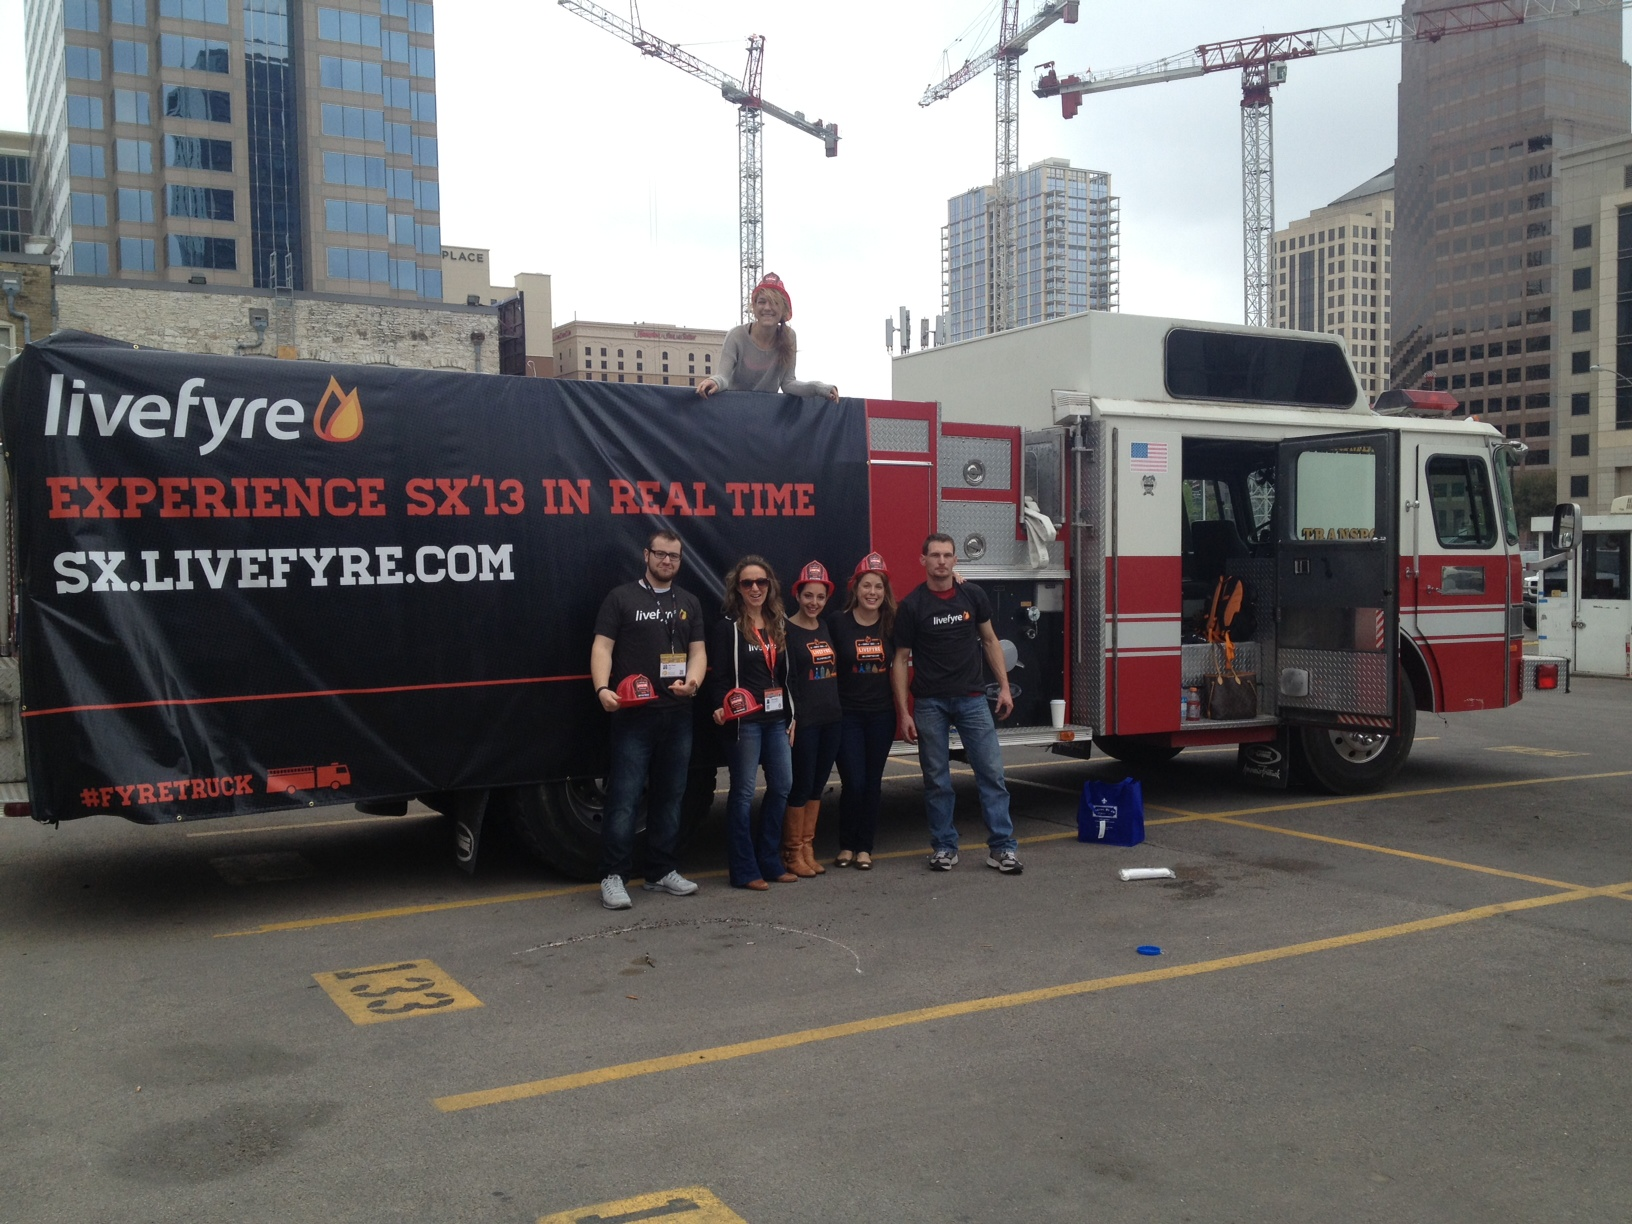 Livefyre rented out a firetruck, really amping up the crazy car genre.